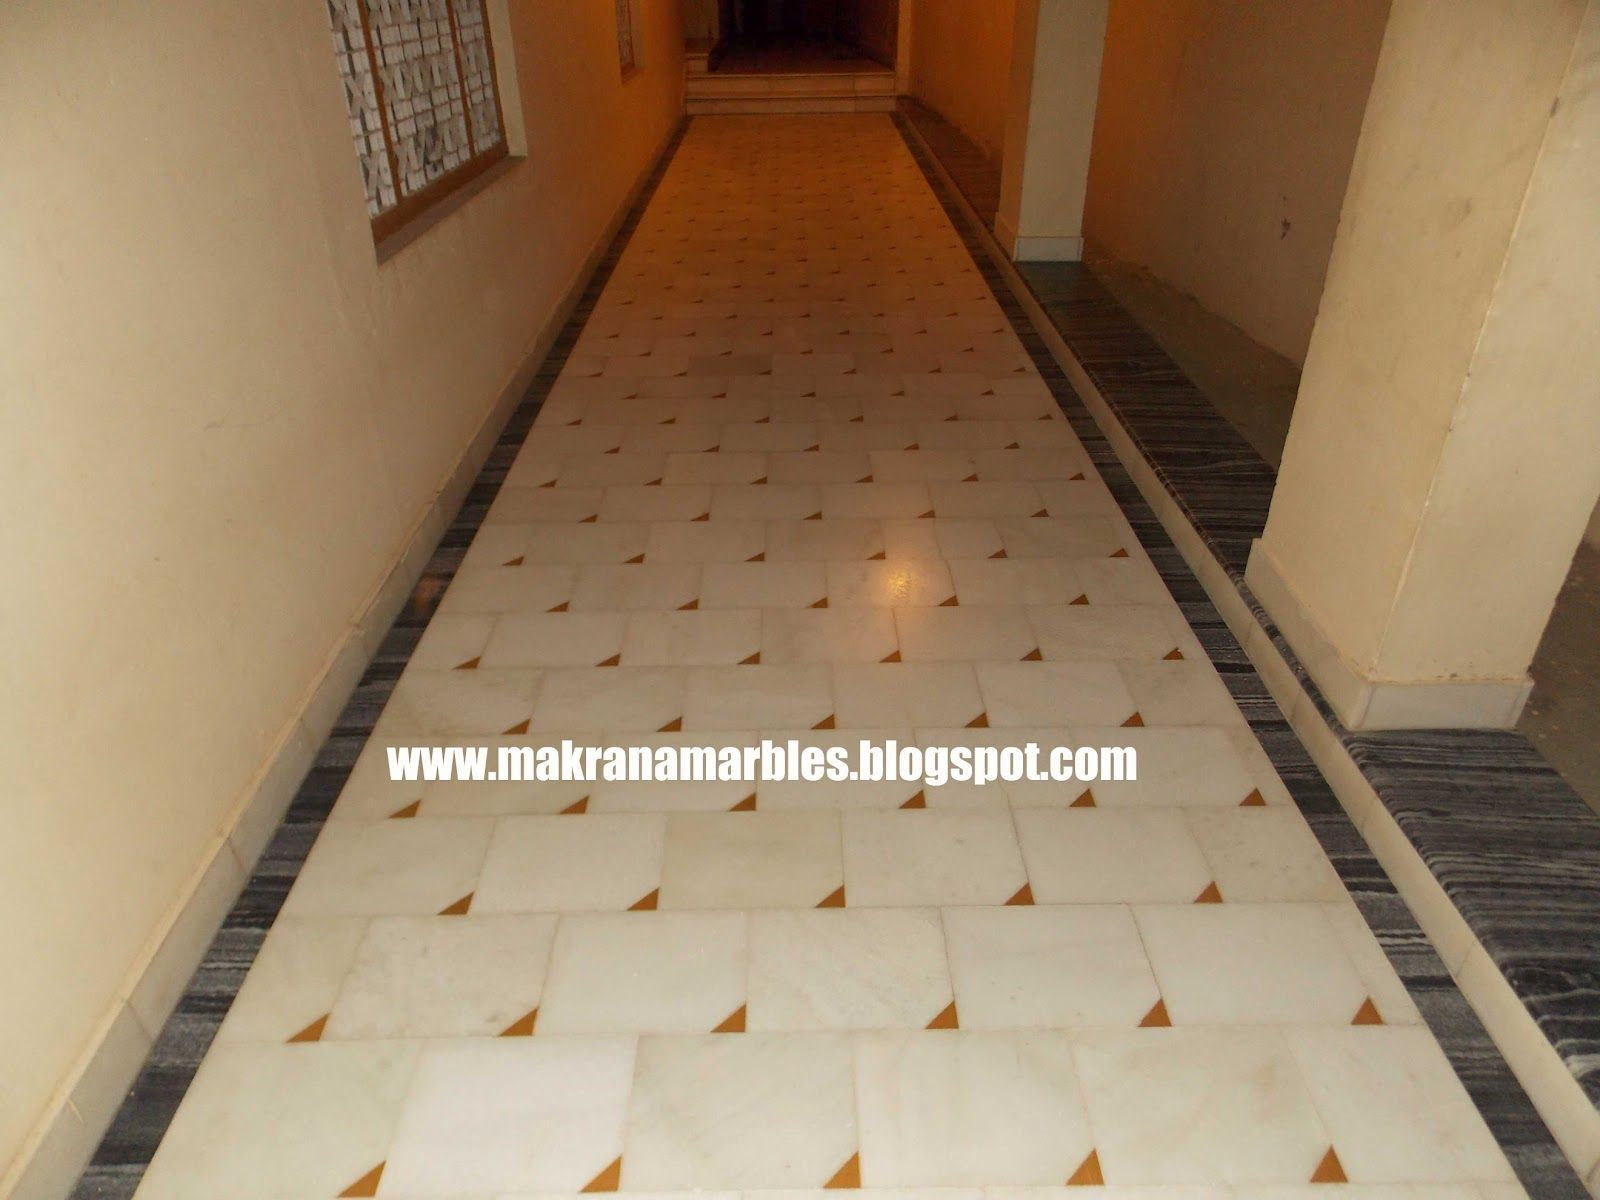 Pin by moaaz saleem moaaz saleem on marble floor design floor designs 28 images new home designs modern homes marble dailygadgetfo Images